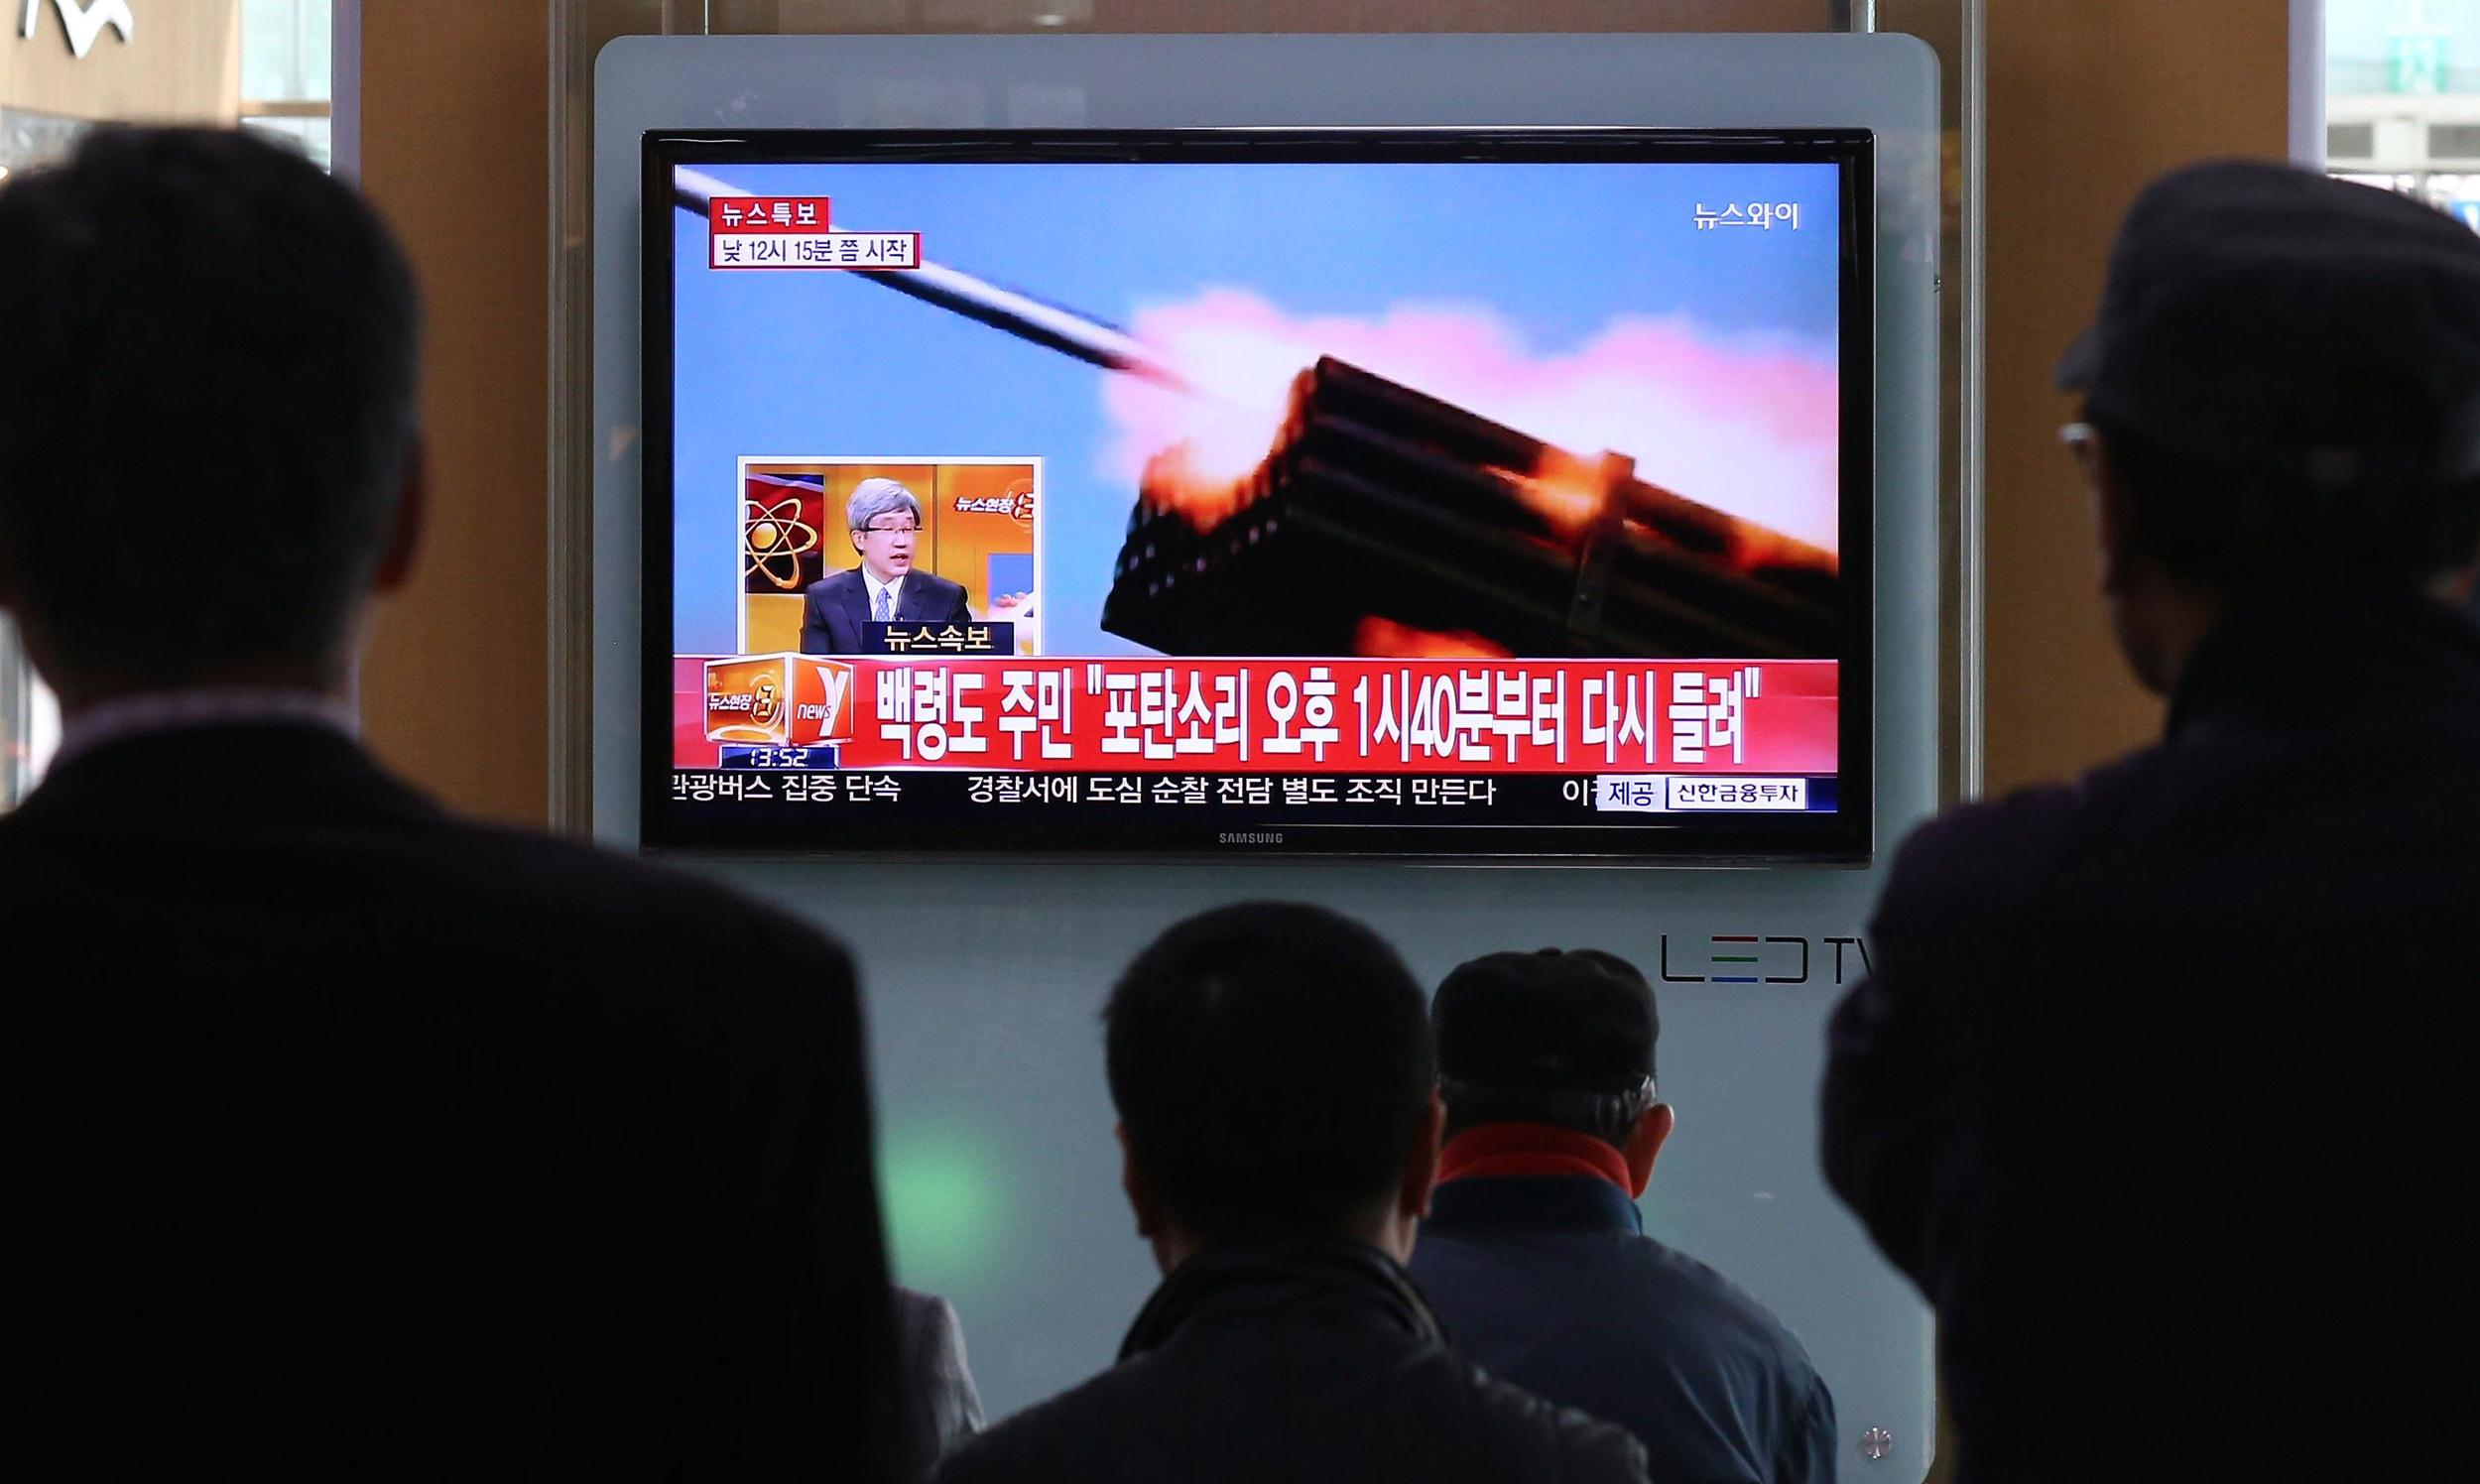 Image: Passengers watch a television program showing reports on North Korea's plan to conduct live-fire drills, at a railway station in Seoul